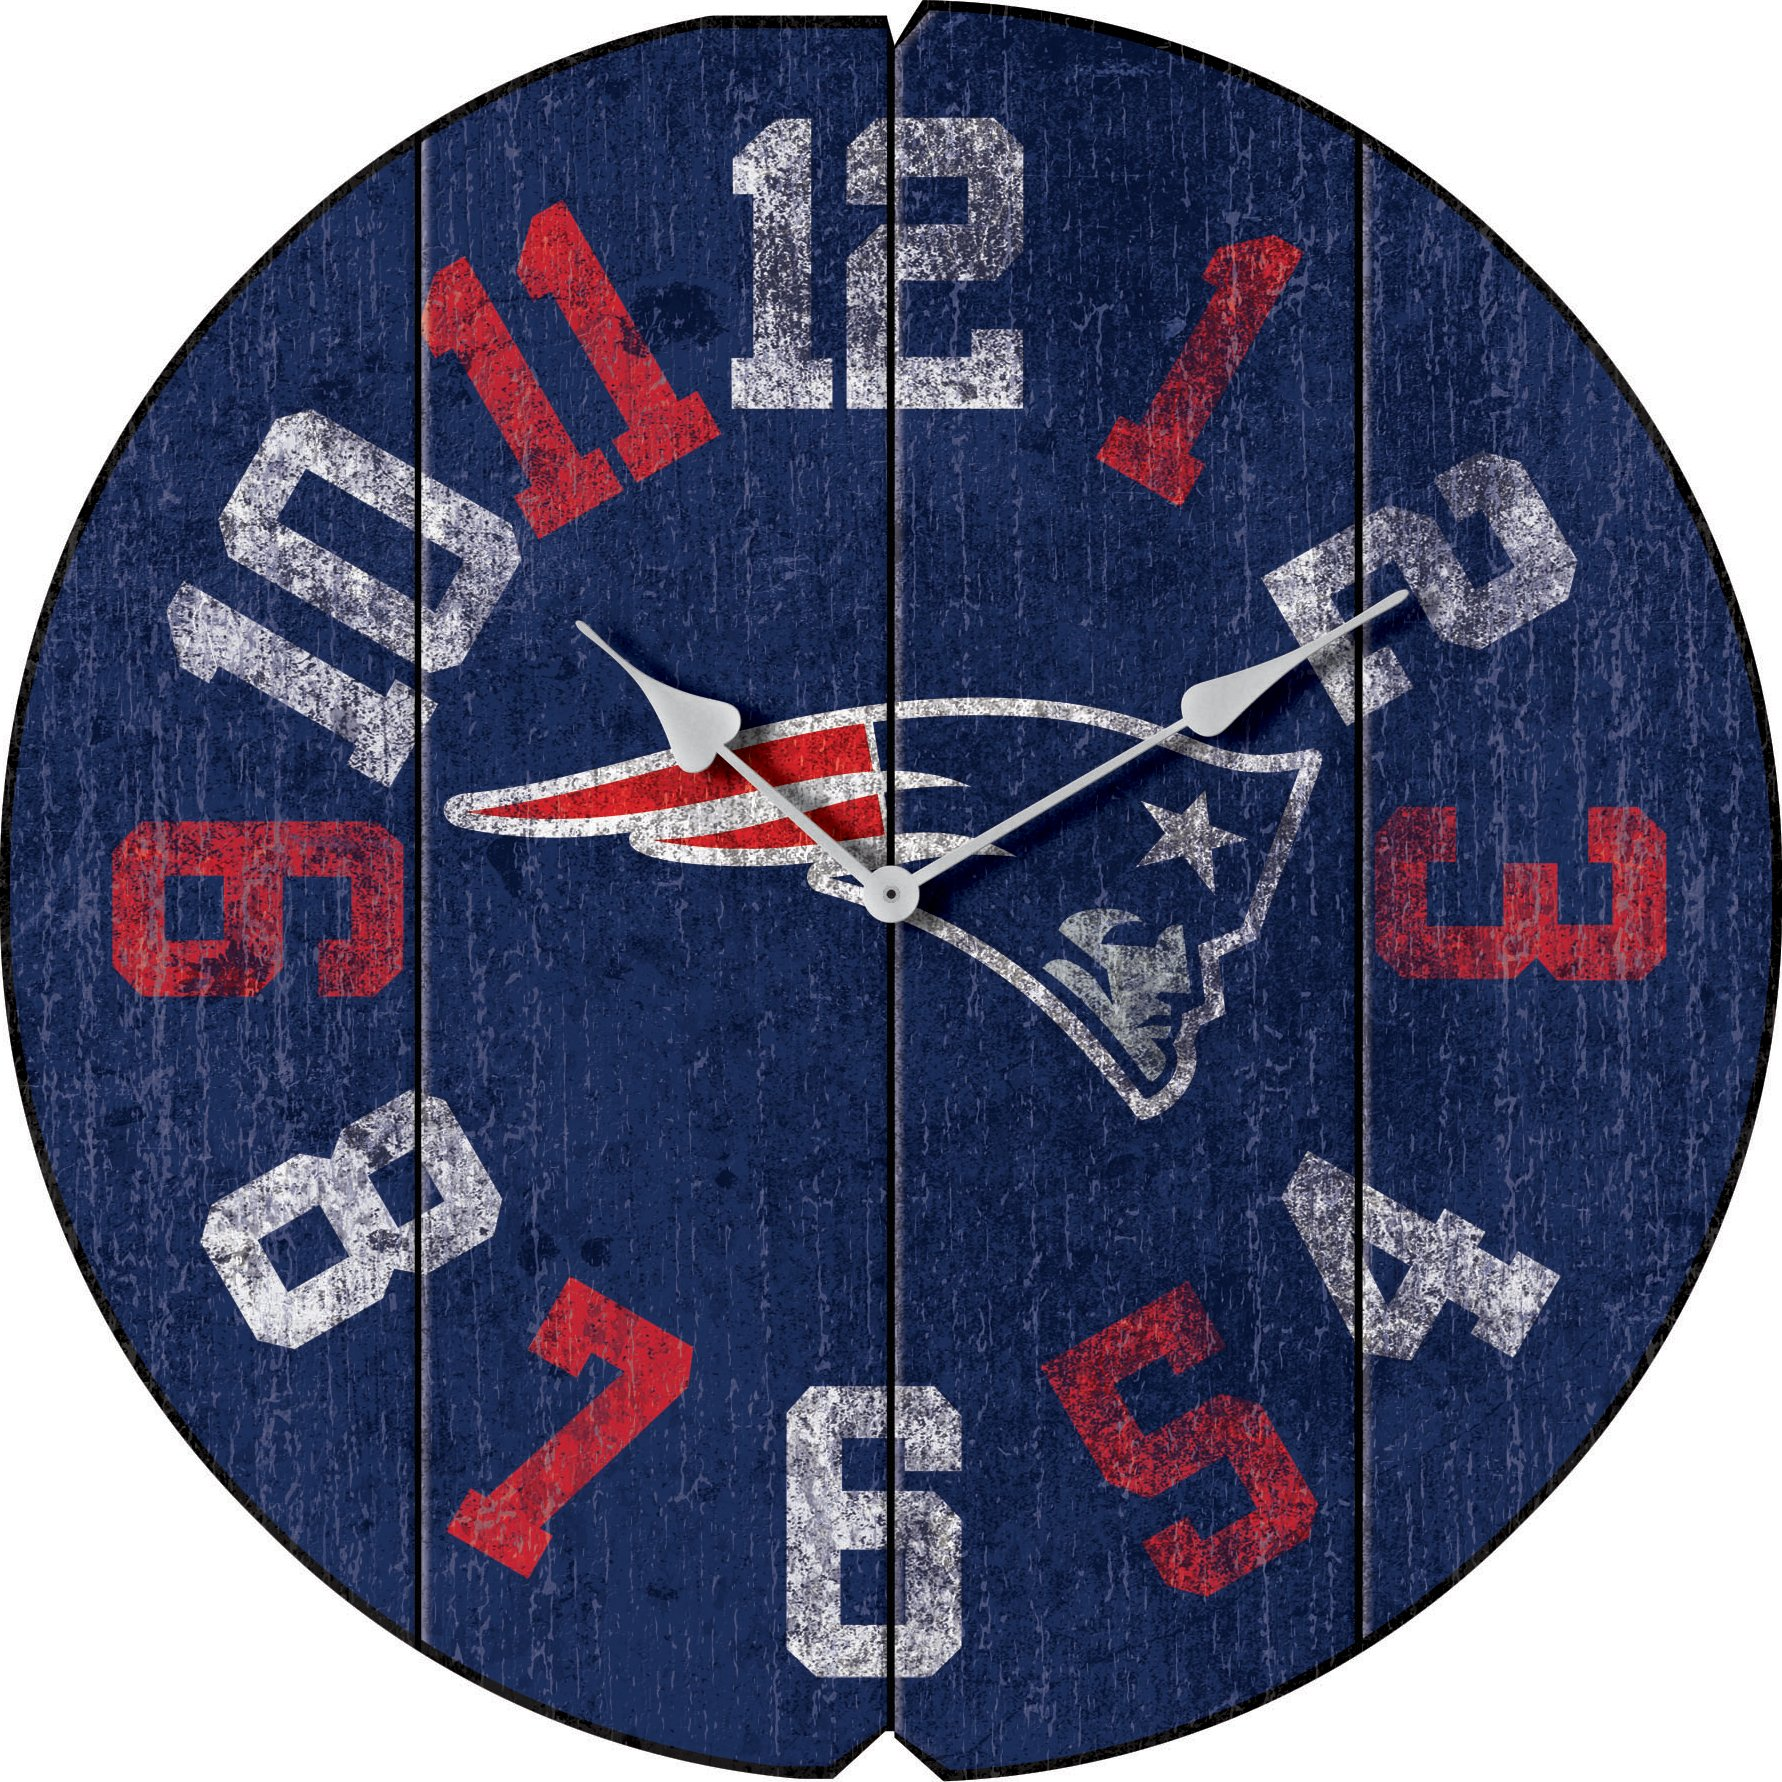 Imperial Officially Licensed NFL Merchandise: Vintage Round Clock, New England Patriots by Imperial